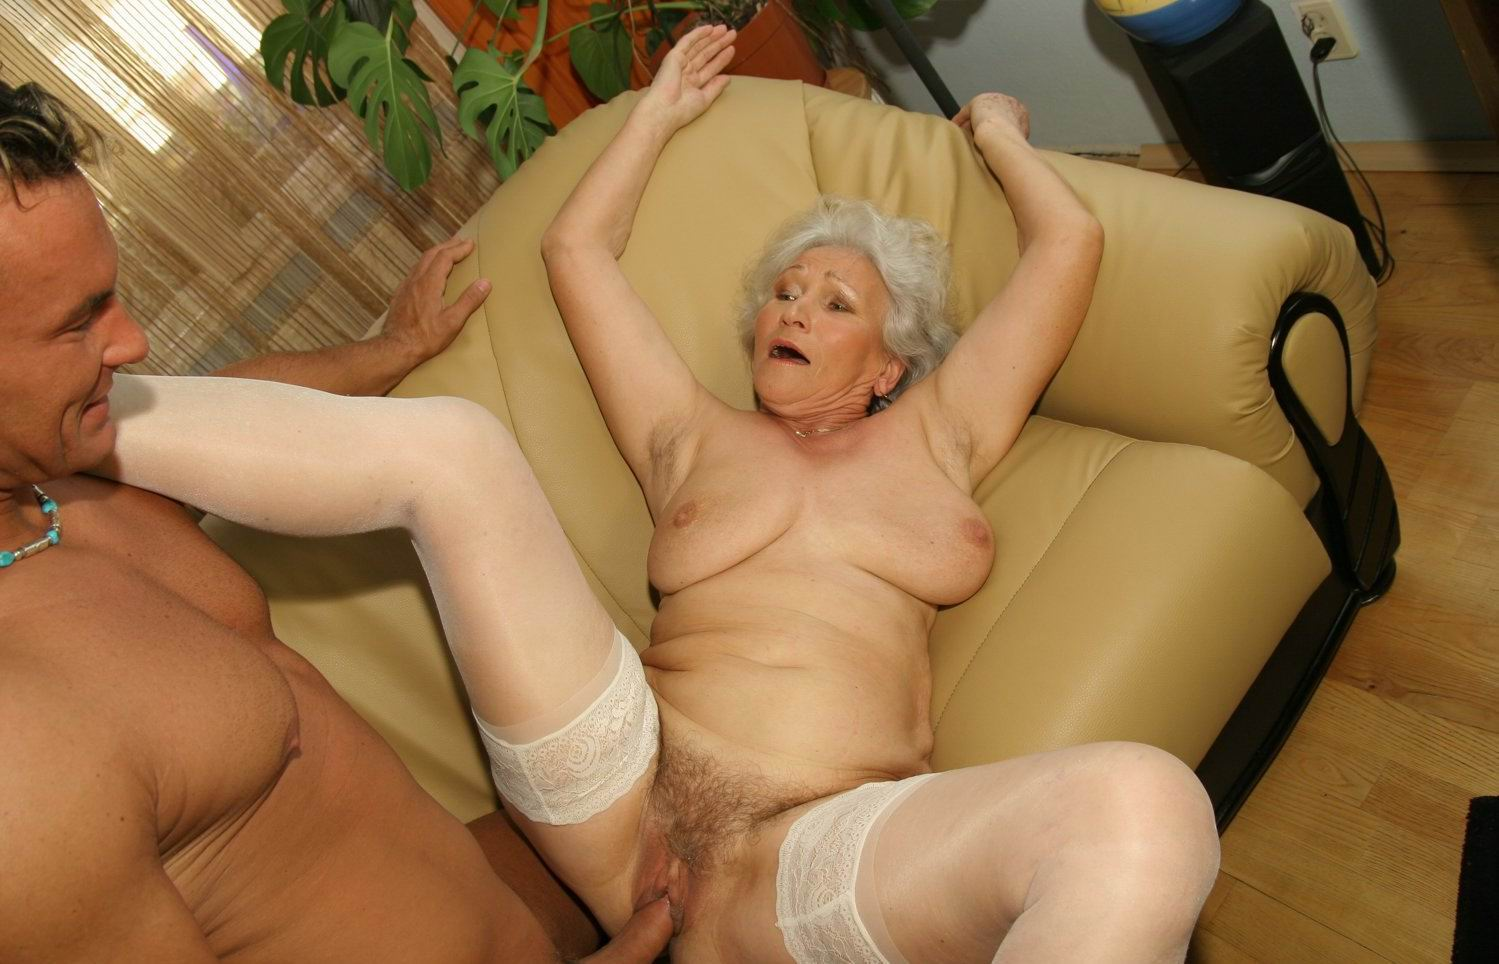 Milf Fucks Young Guy Homemade